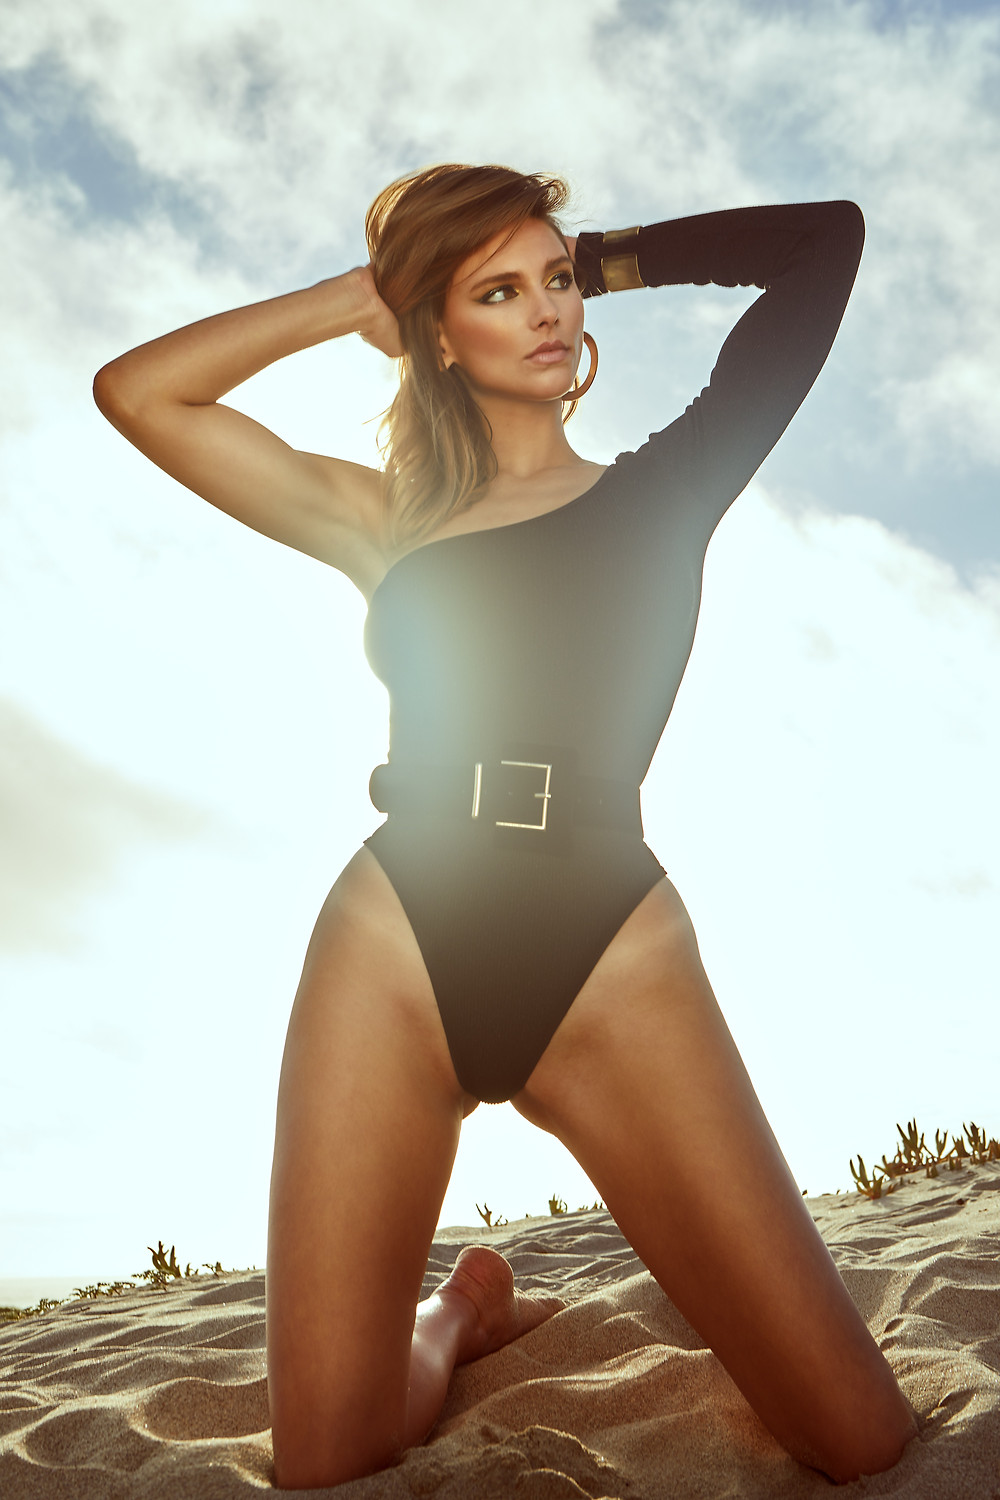 Black bikini one-piece swimsuit on swimwear model Lea from Aston Models, photographed by Patrick Patton.